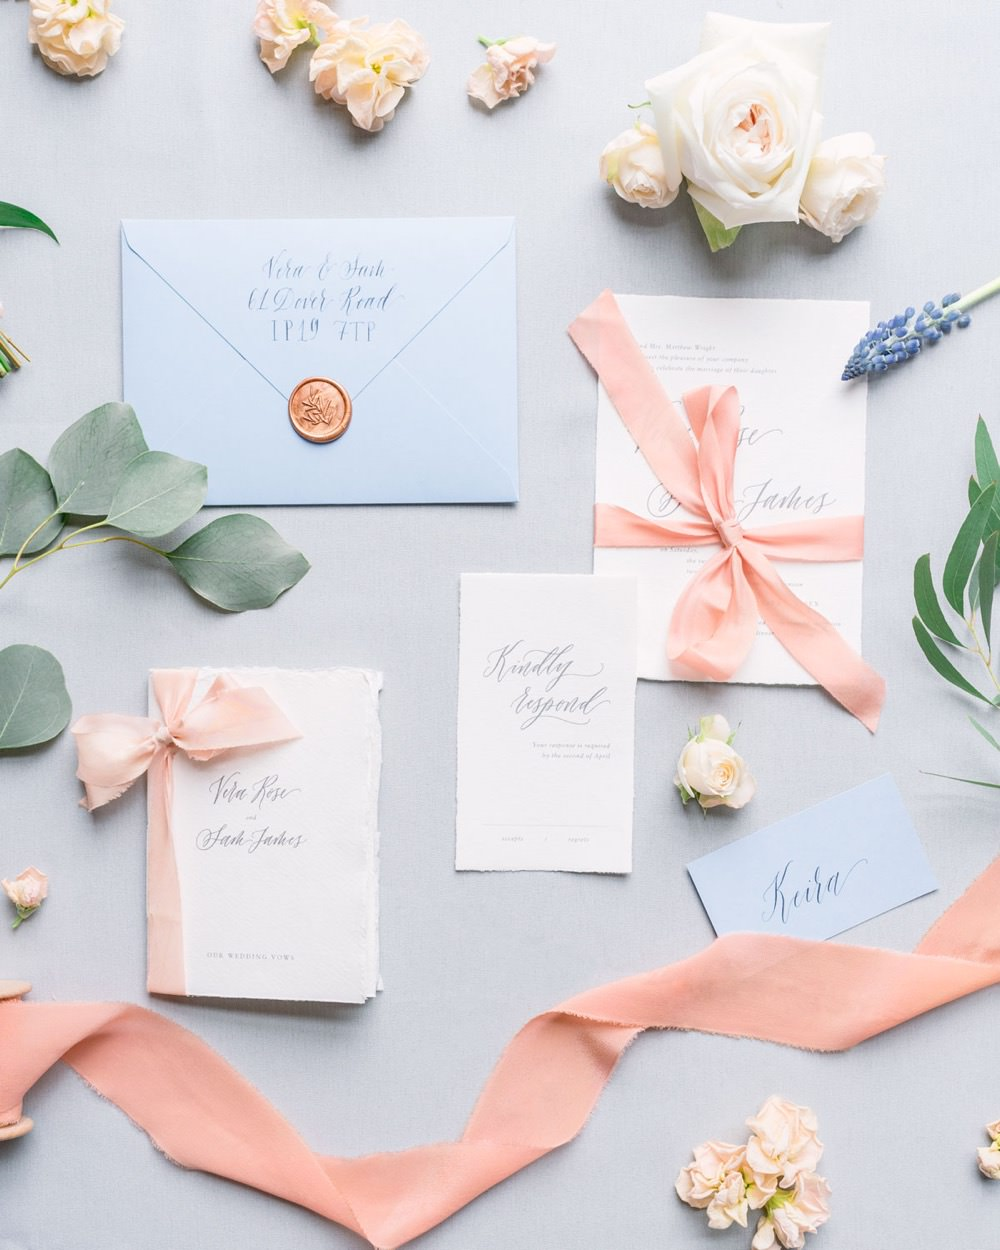 Pastel Pink Blue Stationery Invite Invitations Coral Peach Wax Seal Calligraphy Flat Lay Elegant Wedding Ideas Yll Weddings